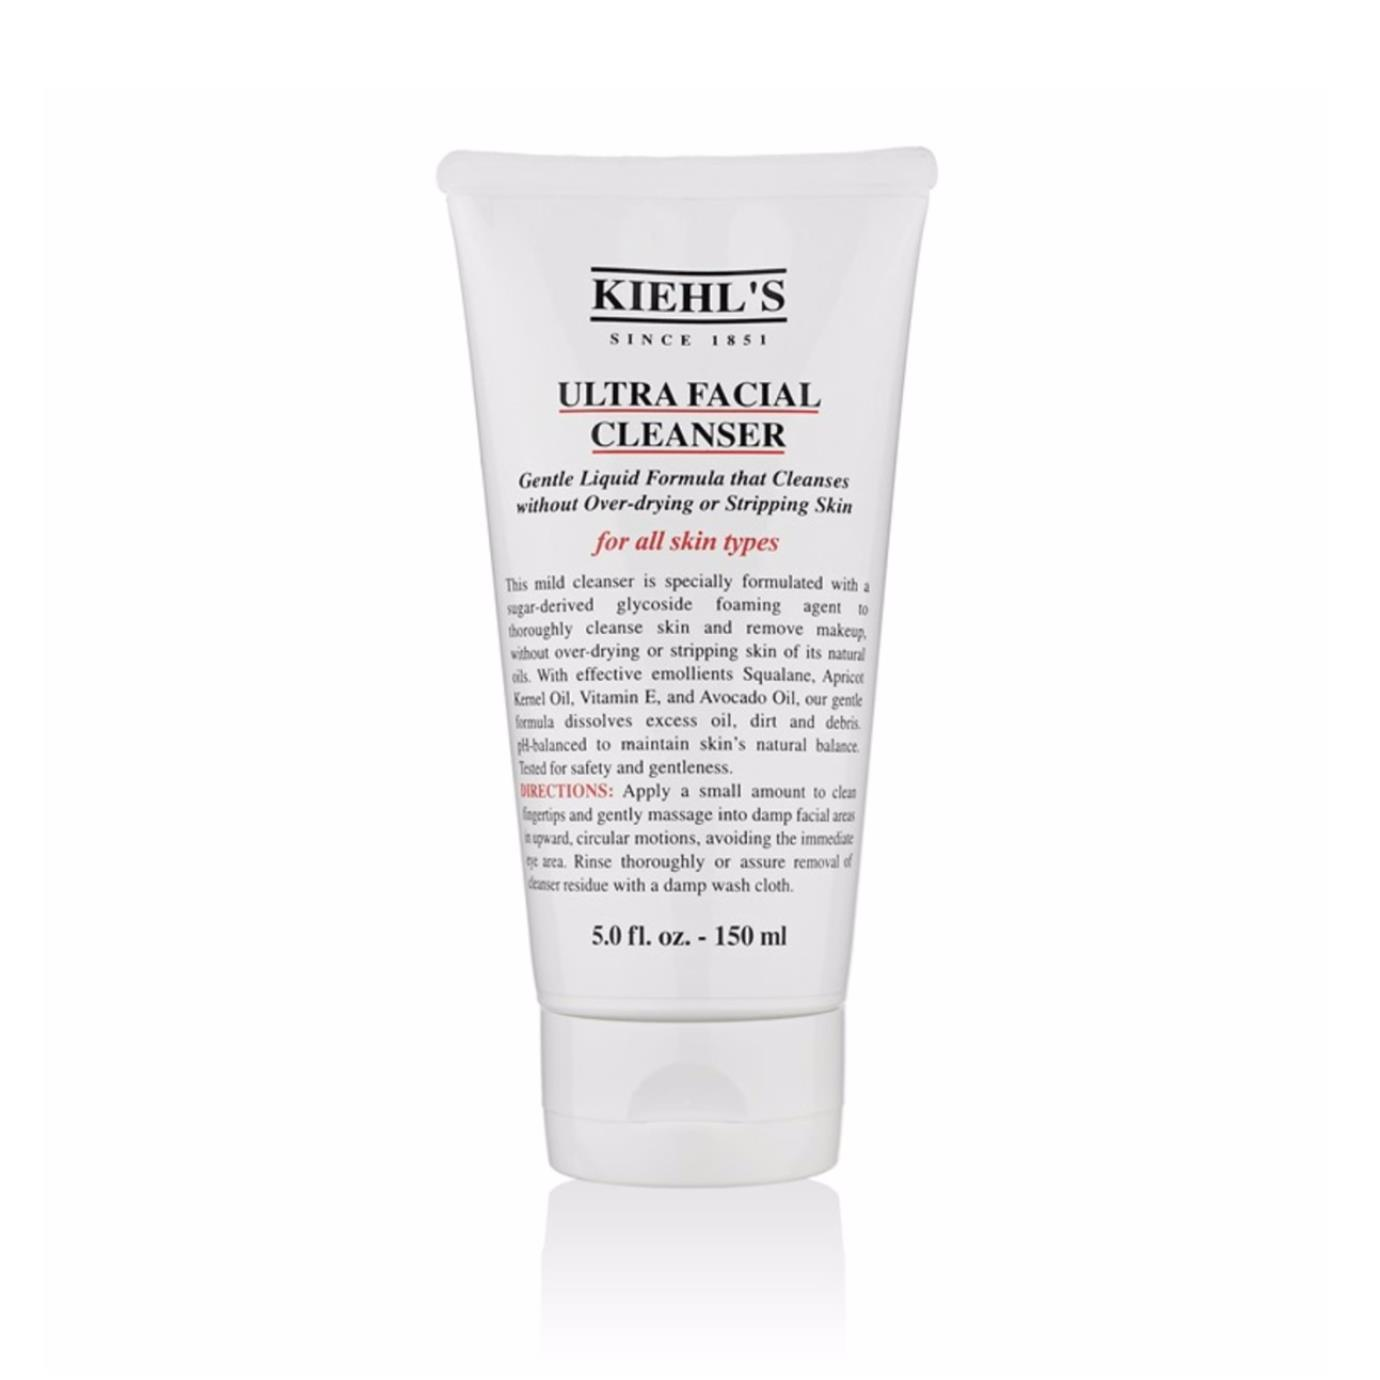 kiehl's ultra facial cleanser passerbuys best cleansing.jpg